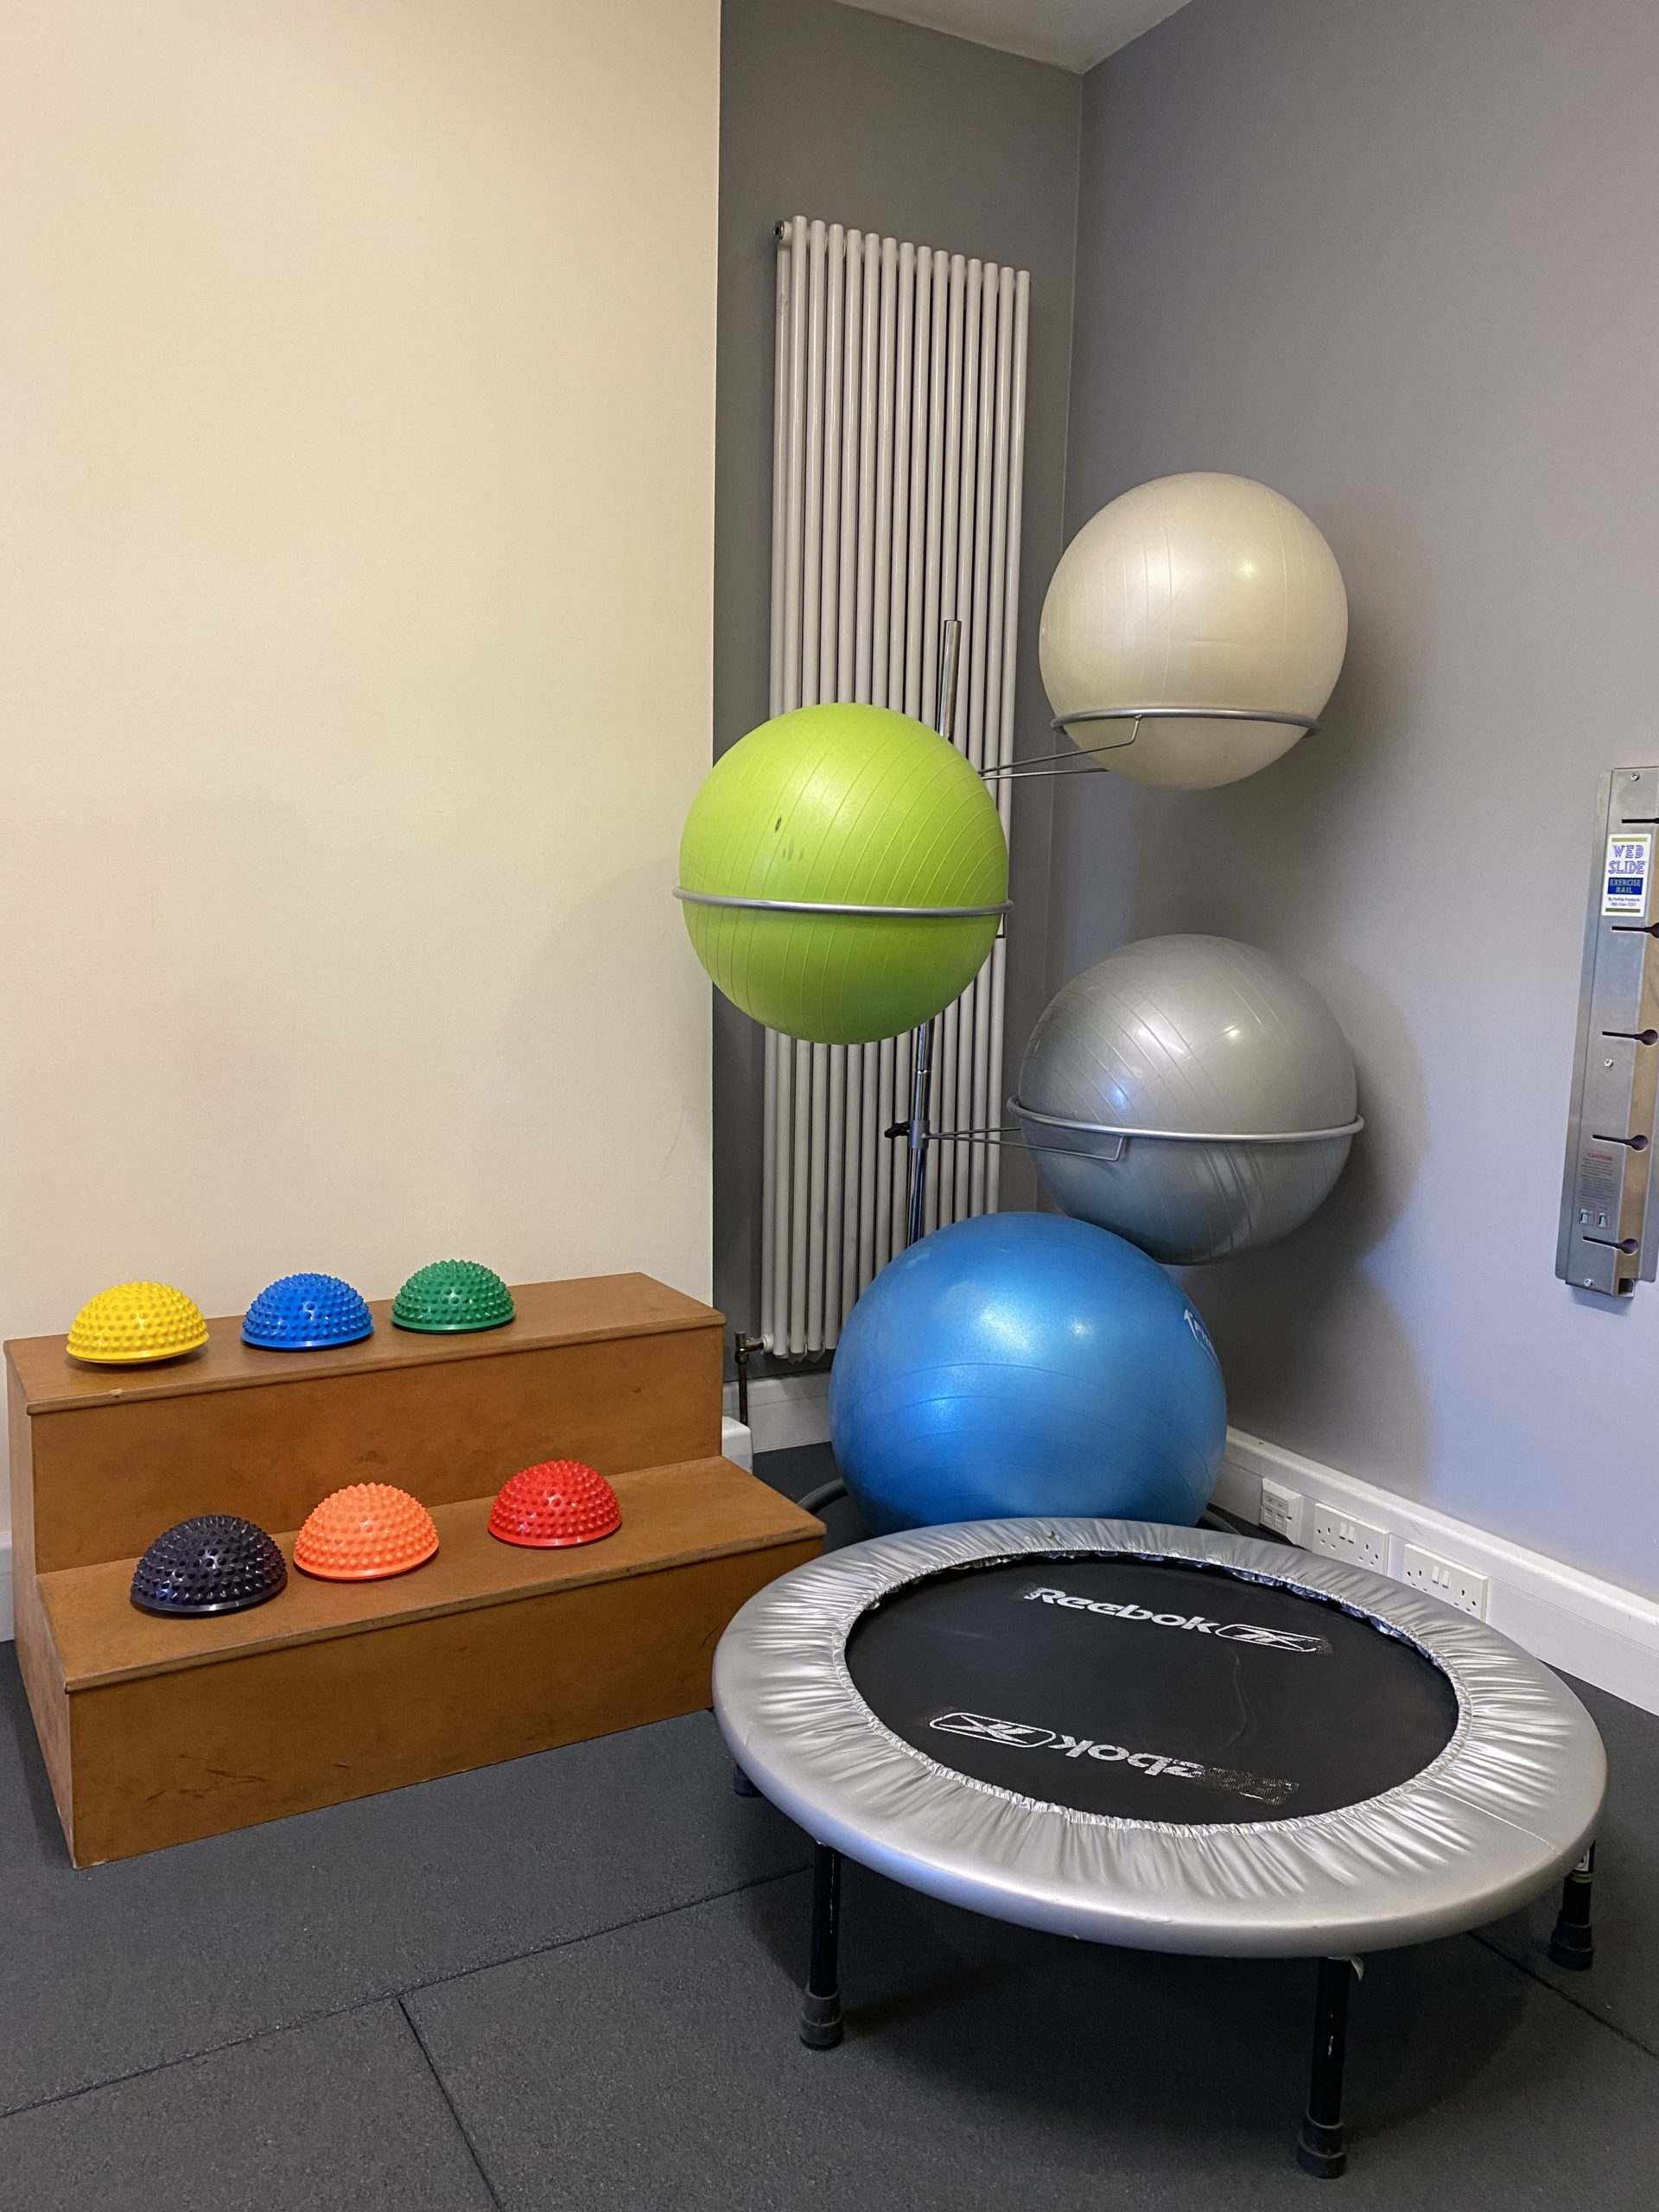 Swiss balls, gym balls, mini trampoline and wobble trainers for stability exercises